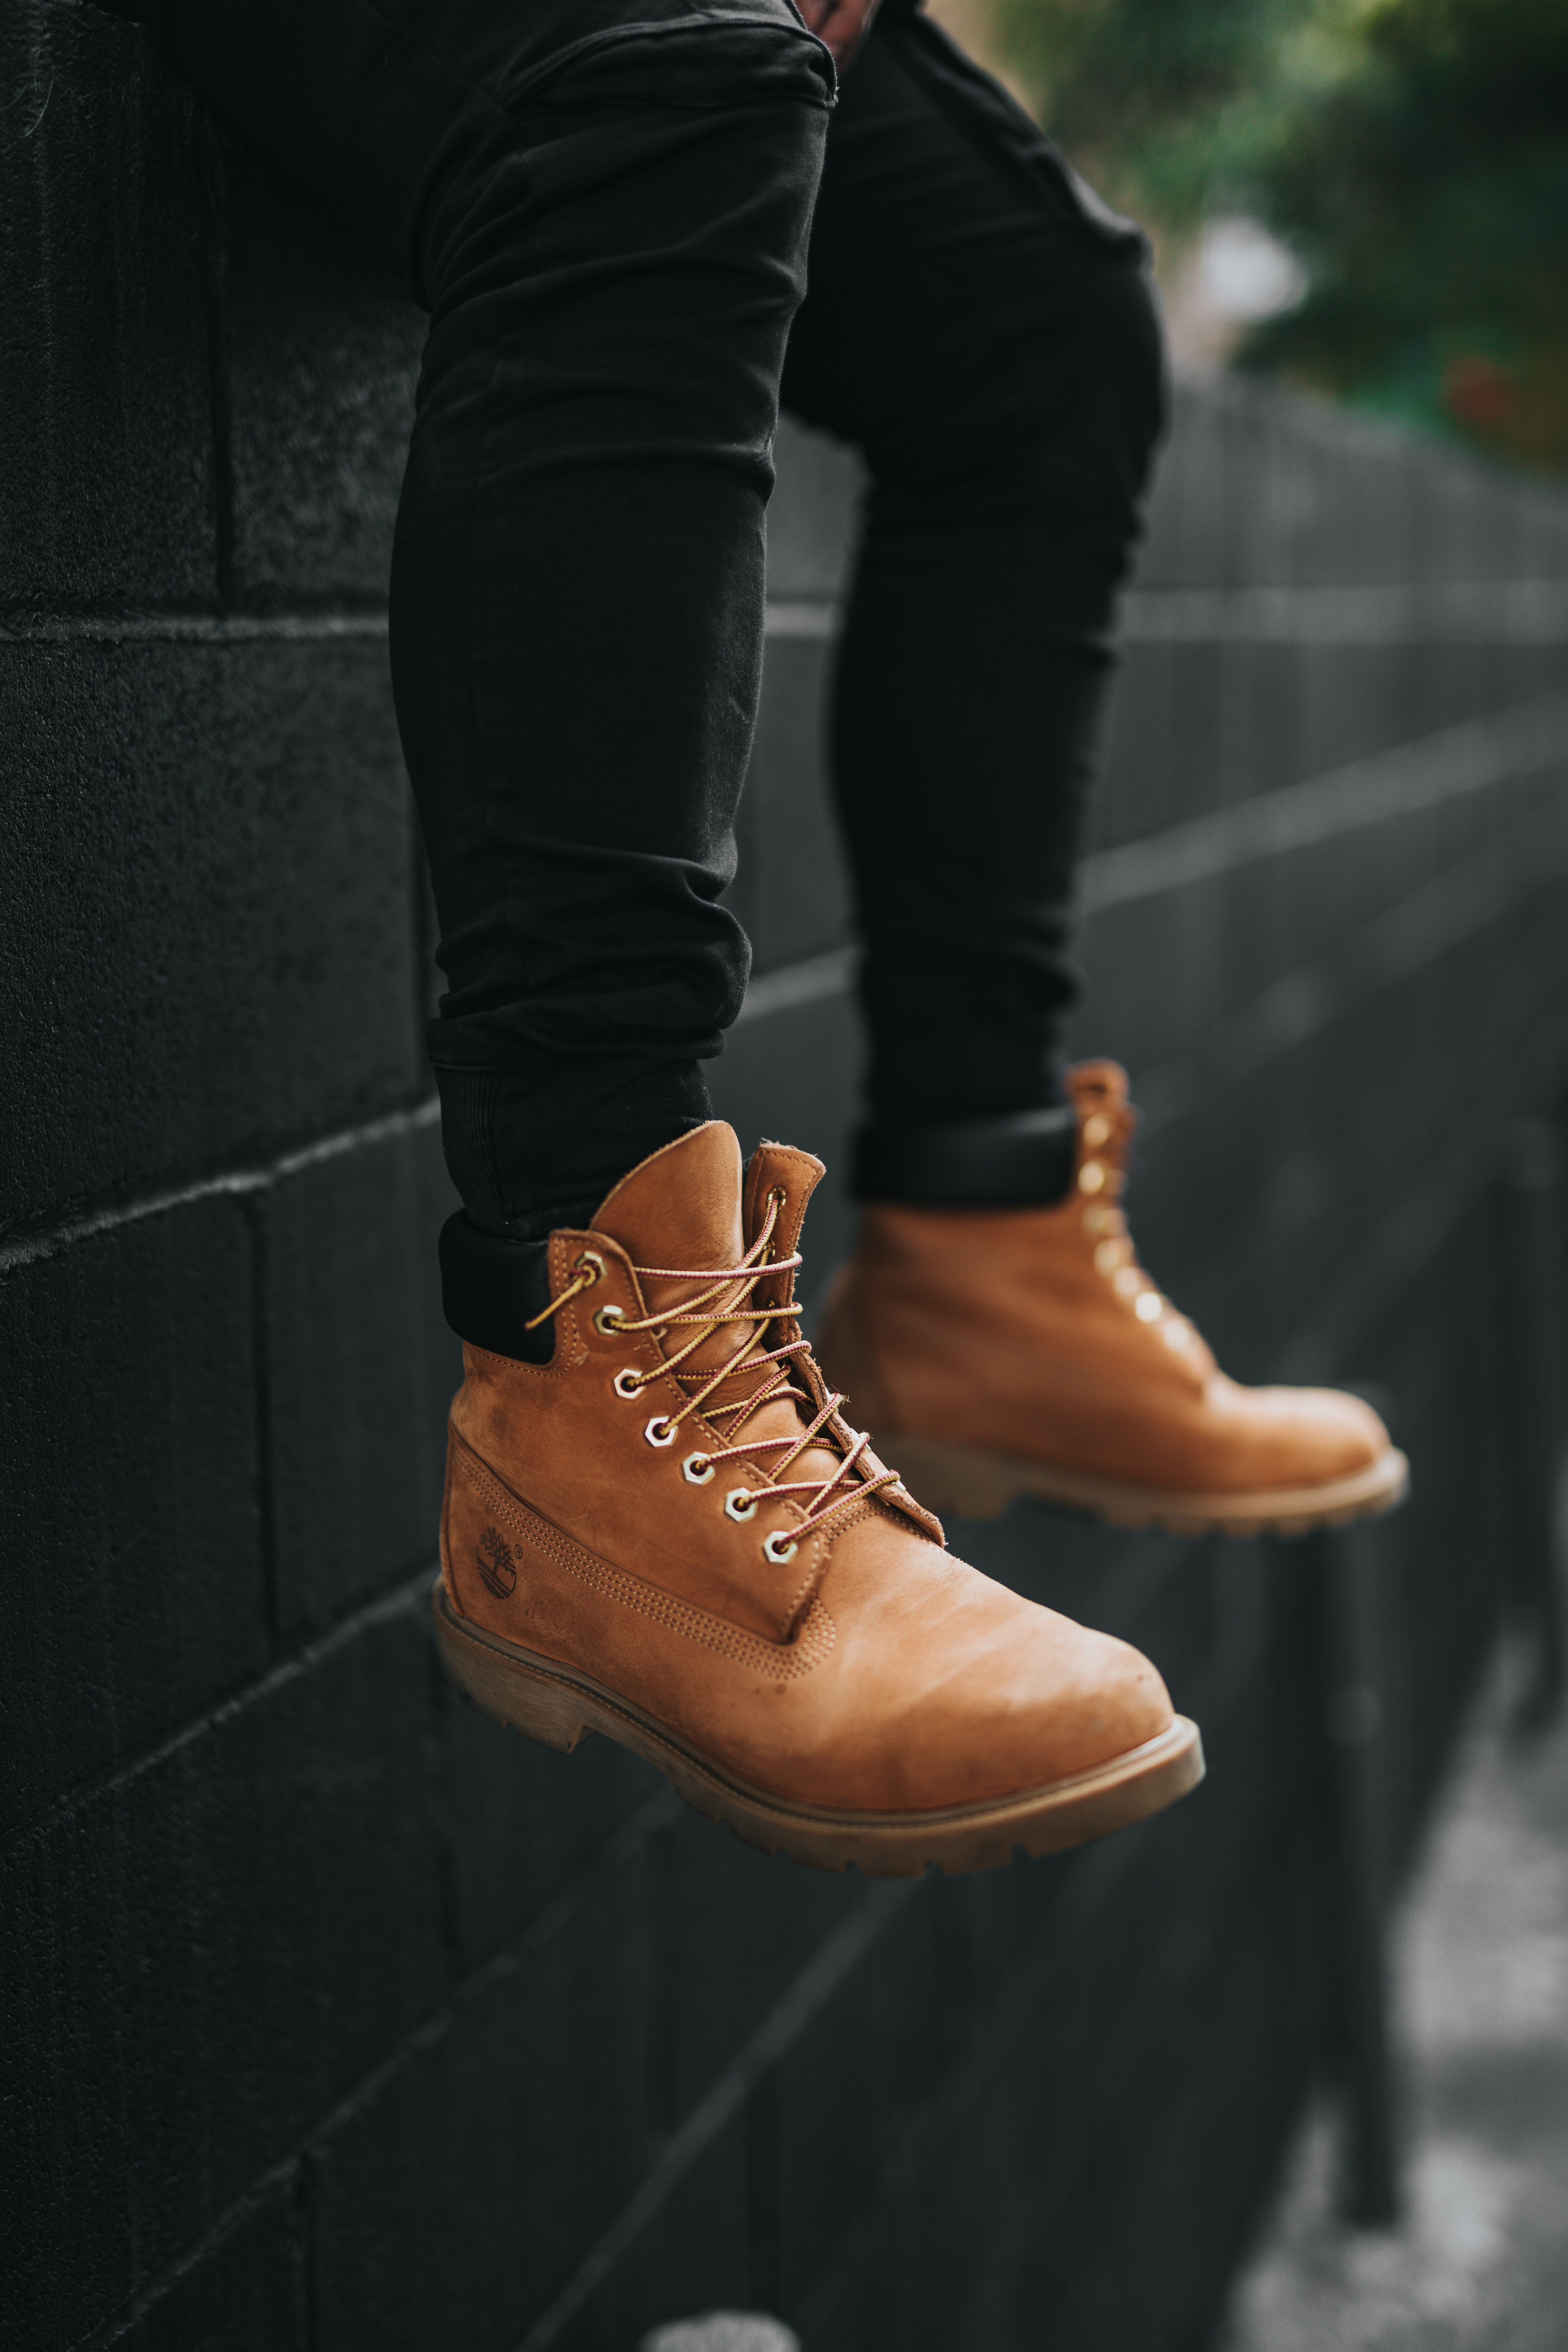 person wearing pair of brown Timberland leather work boots